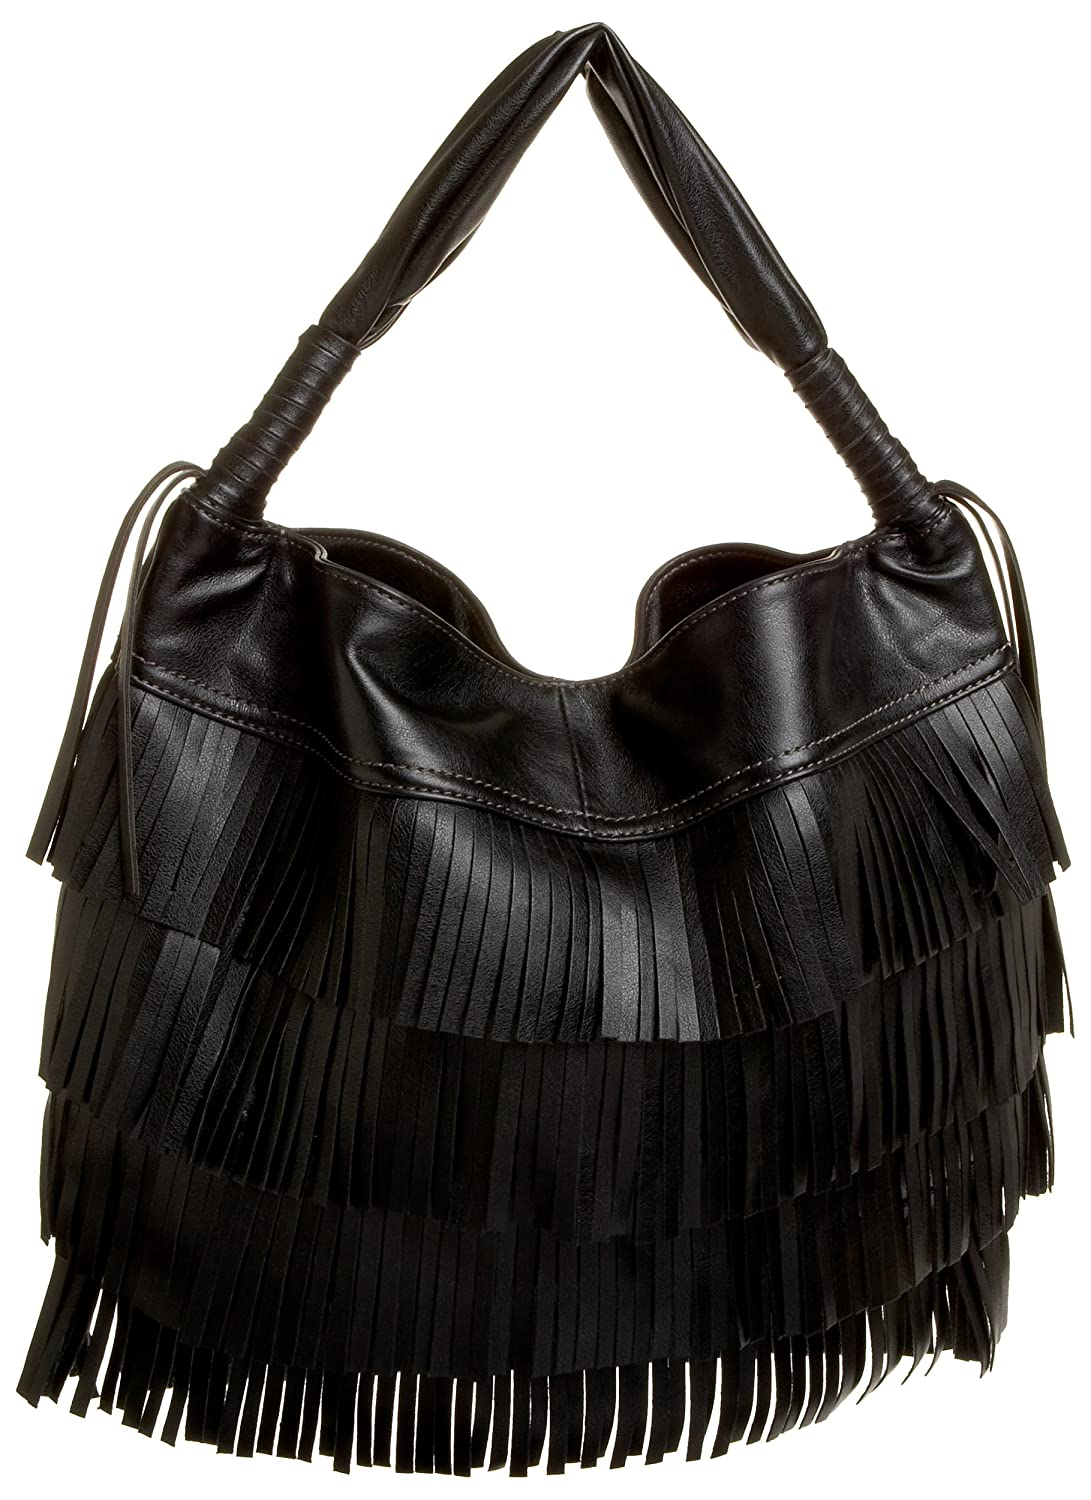 Melie Bianco Fringe Hobo - Free Overnight Shipping & Return Shipping: Endless.com :  latest fashion elegant designer fashion ruffle